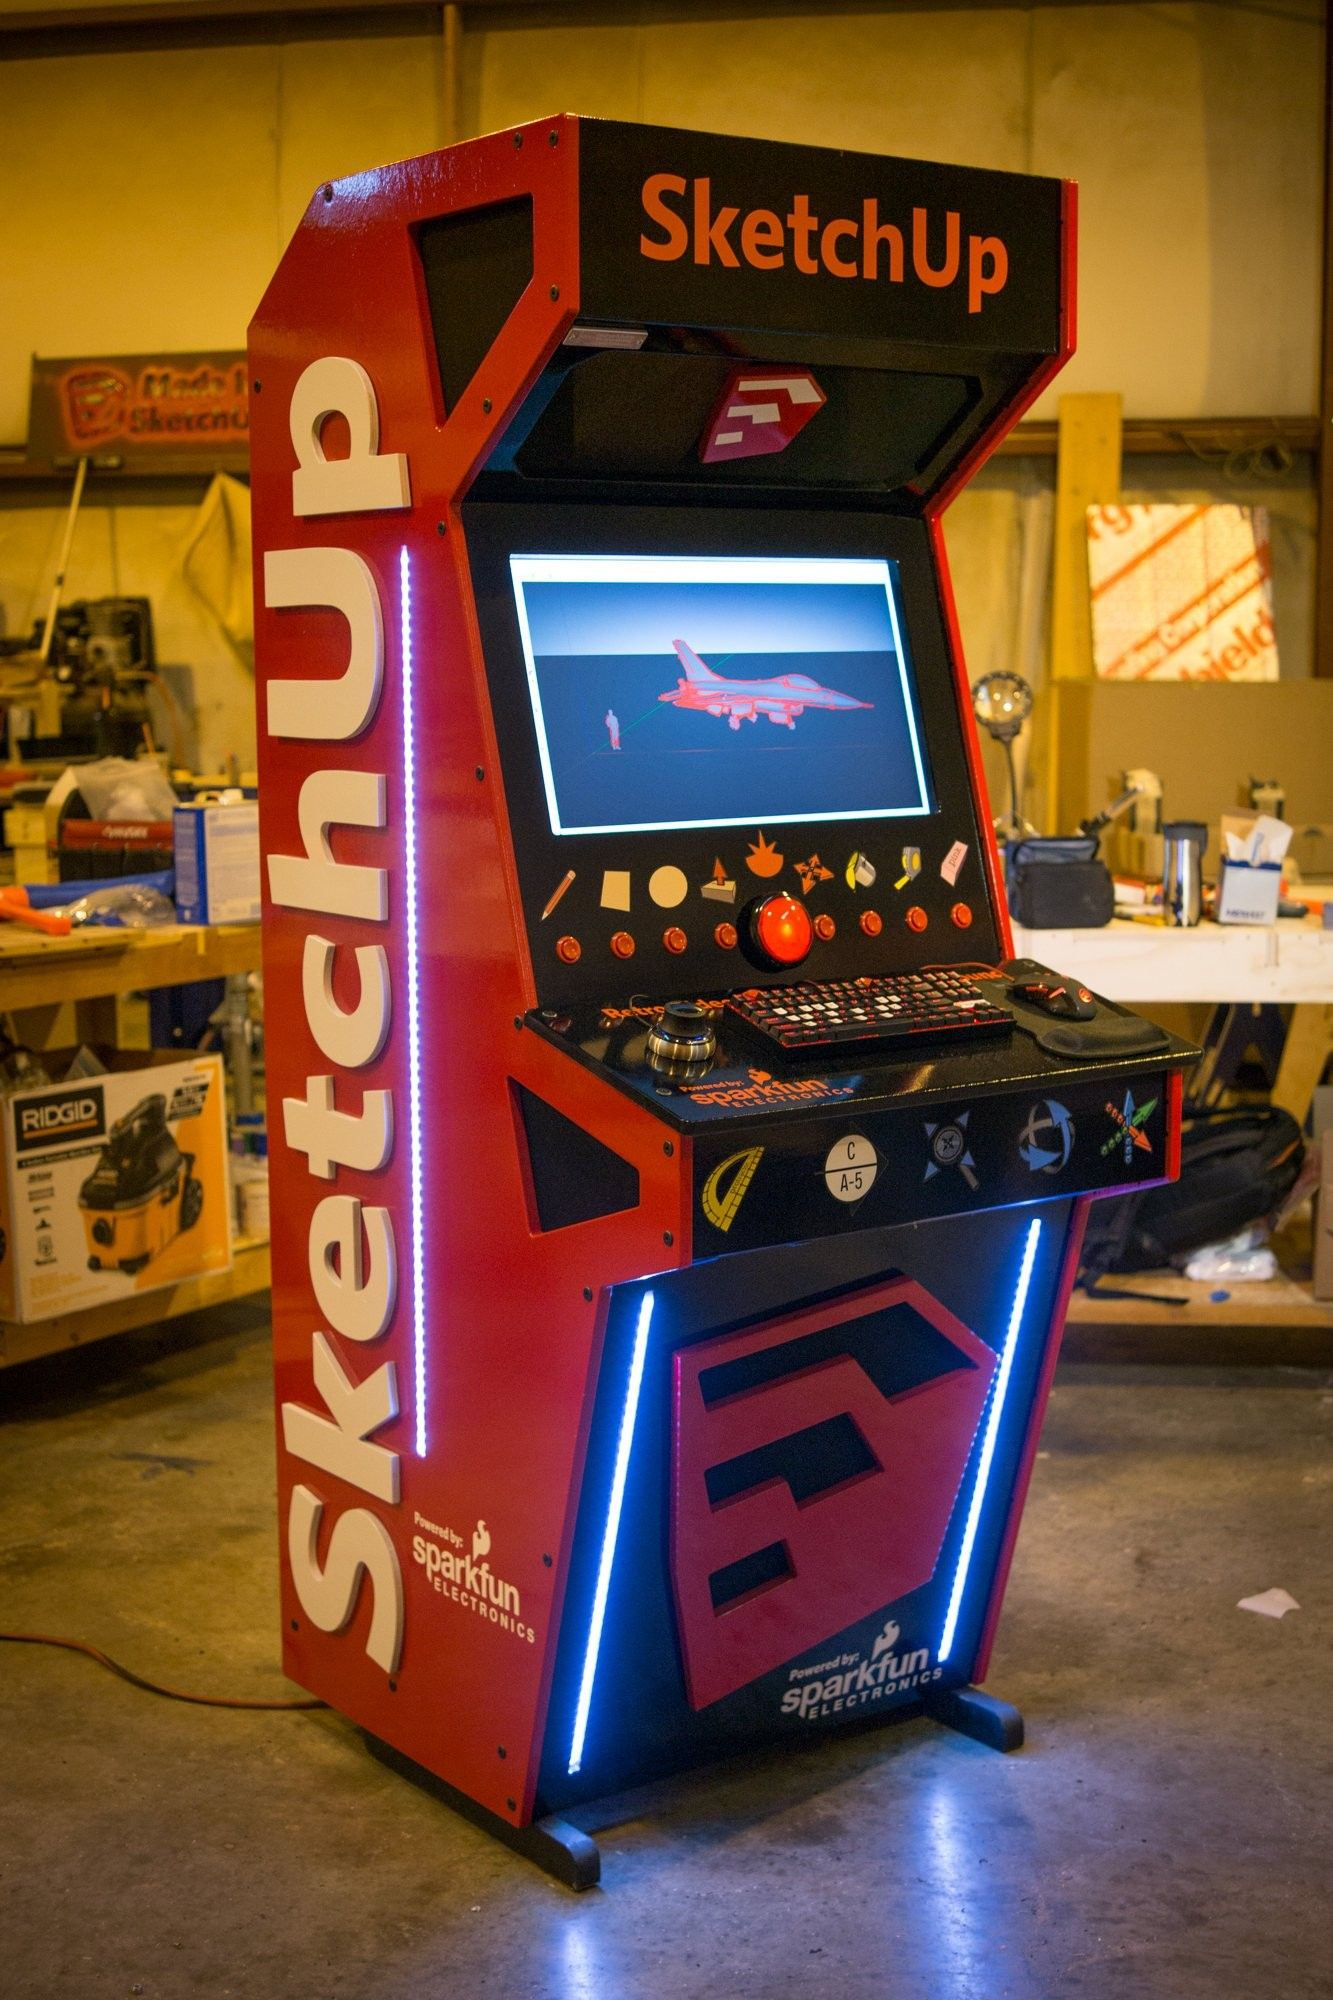 Pin by Bryan Payne on Things I want! Arcade, Mame